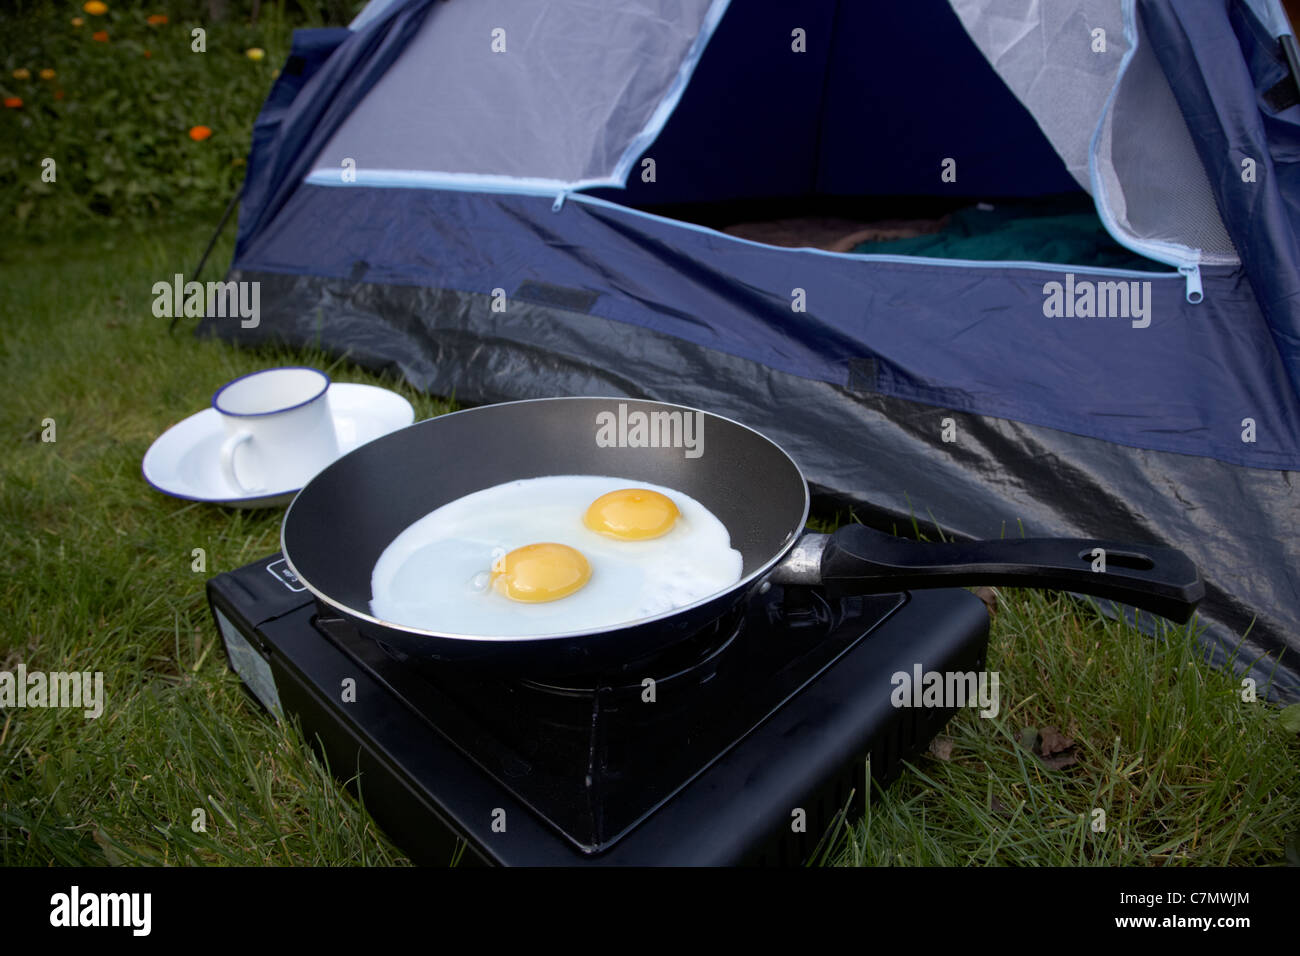 cooking two fried eggs on a small portable gas c&ing stove in front of the open door of a dome tent & cooking two fried eggs on a small portable gas camping stove in ...